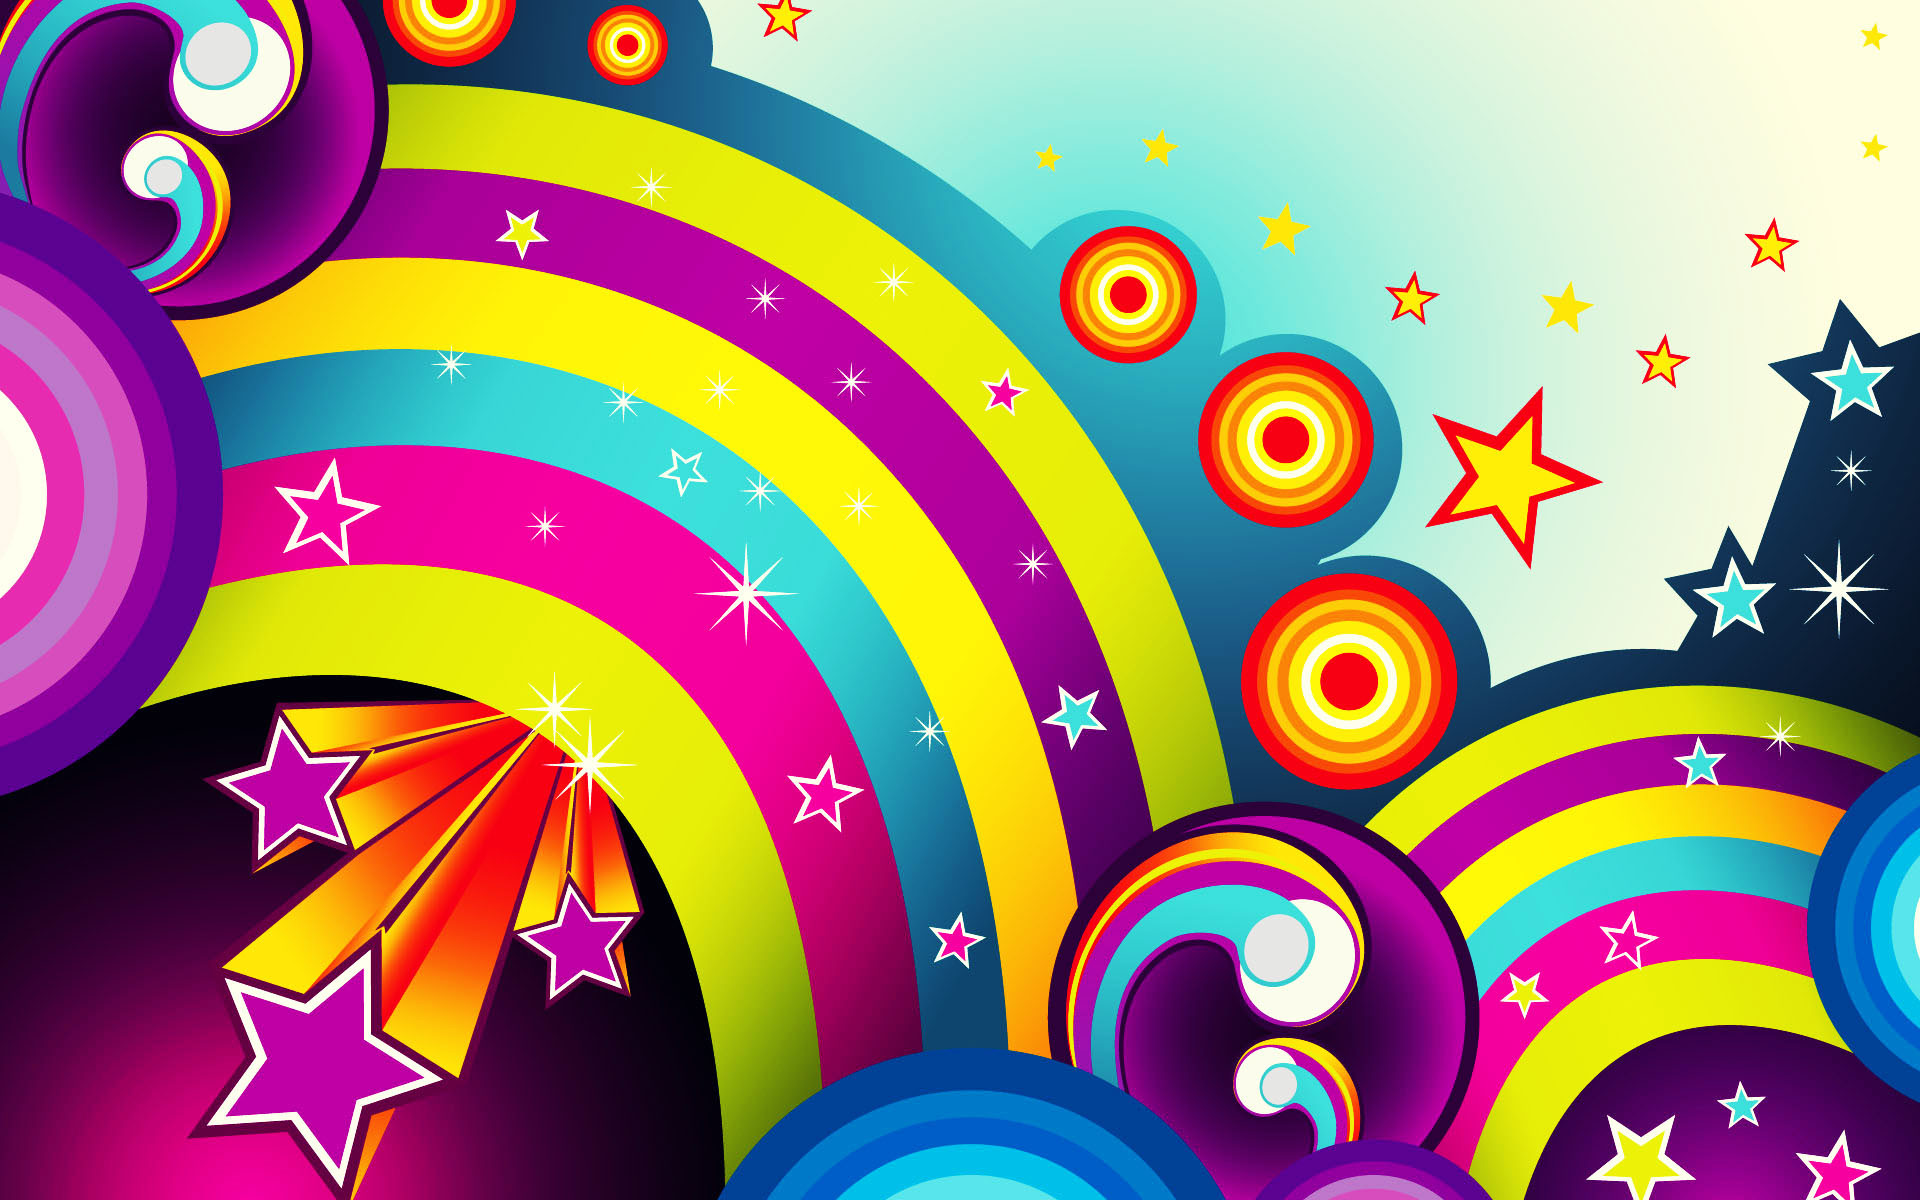 1920x1200 Cool Colorful D Wallpapers wallpaper Colorful Images Wallpapers Wallpapers)